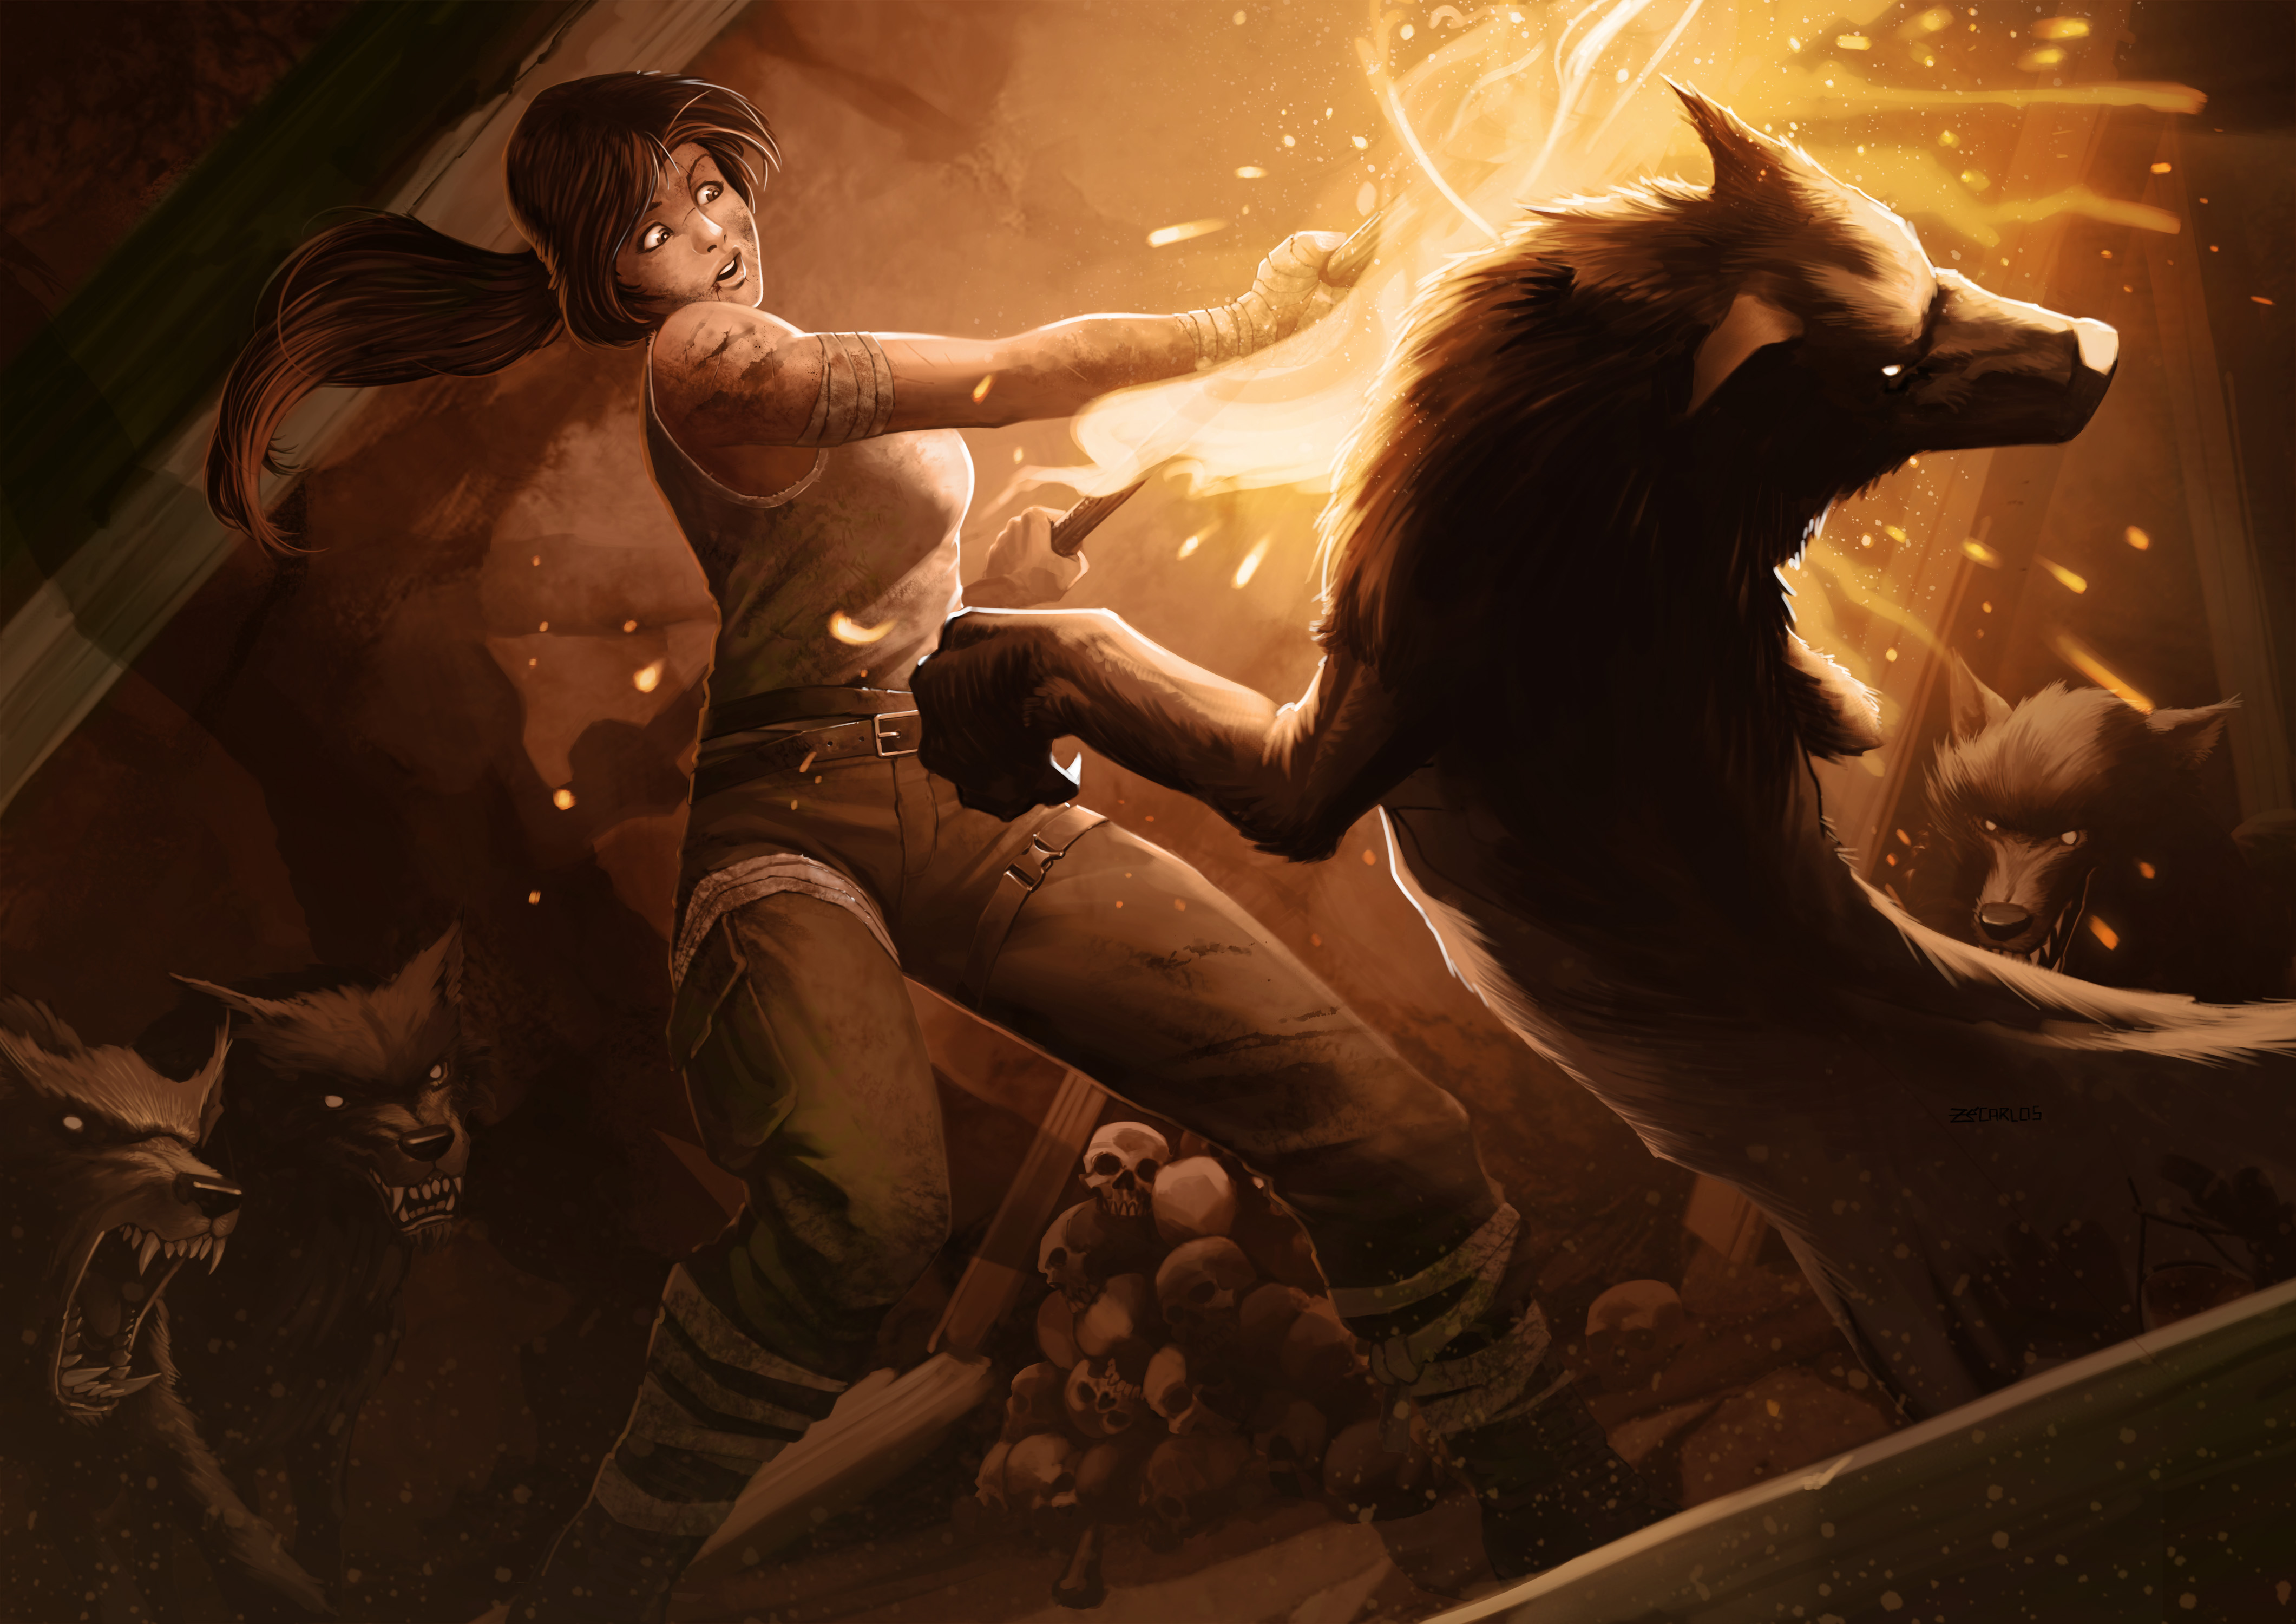 lara croft-Wolves on the prowl by zecarlos